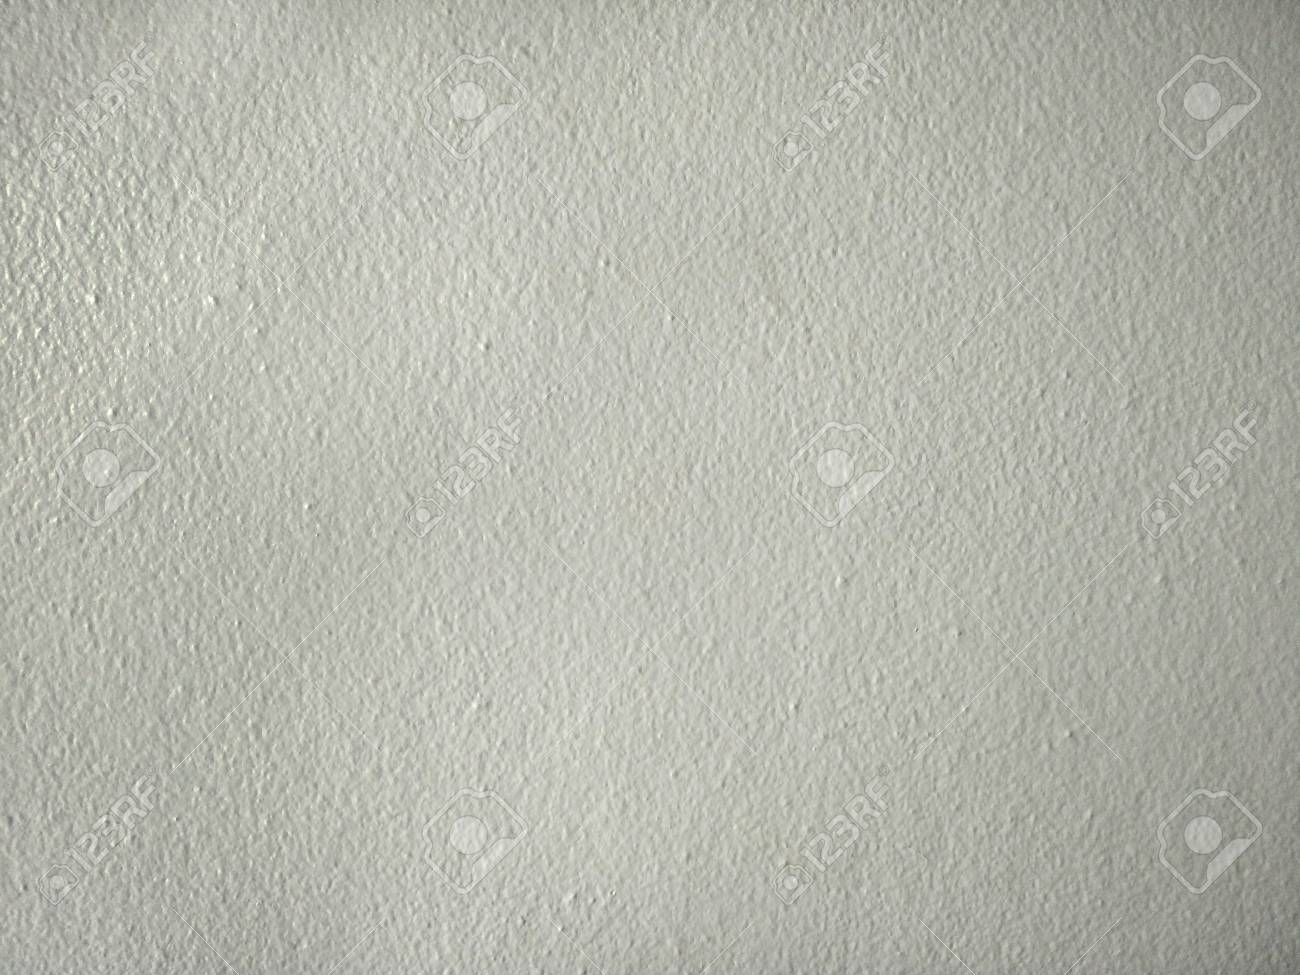 Abstract Background Interior Building Texture Concrete Wall And Stock Photo Picture And Royalty Free Image Image 97945820